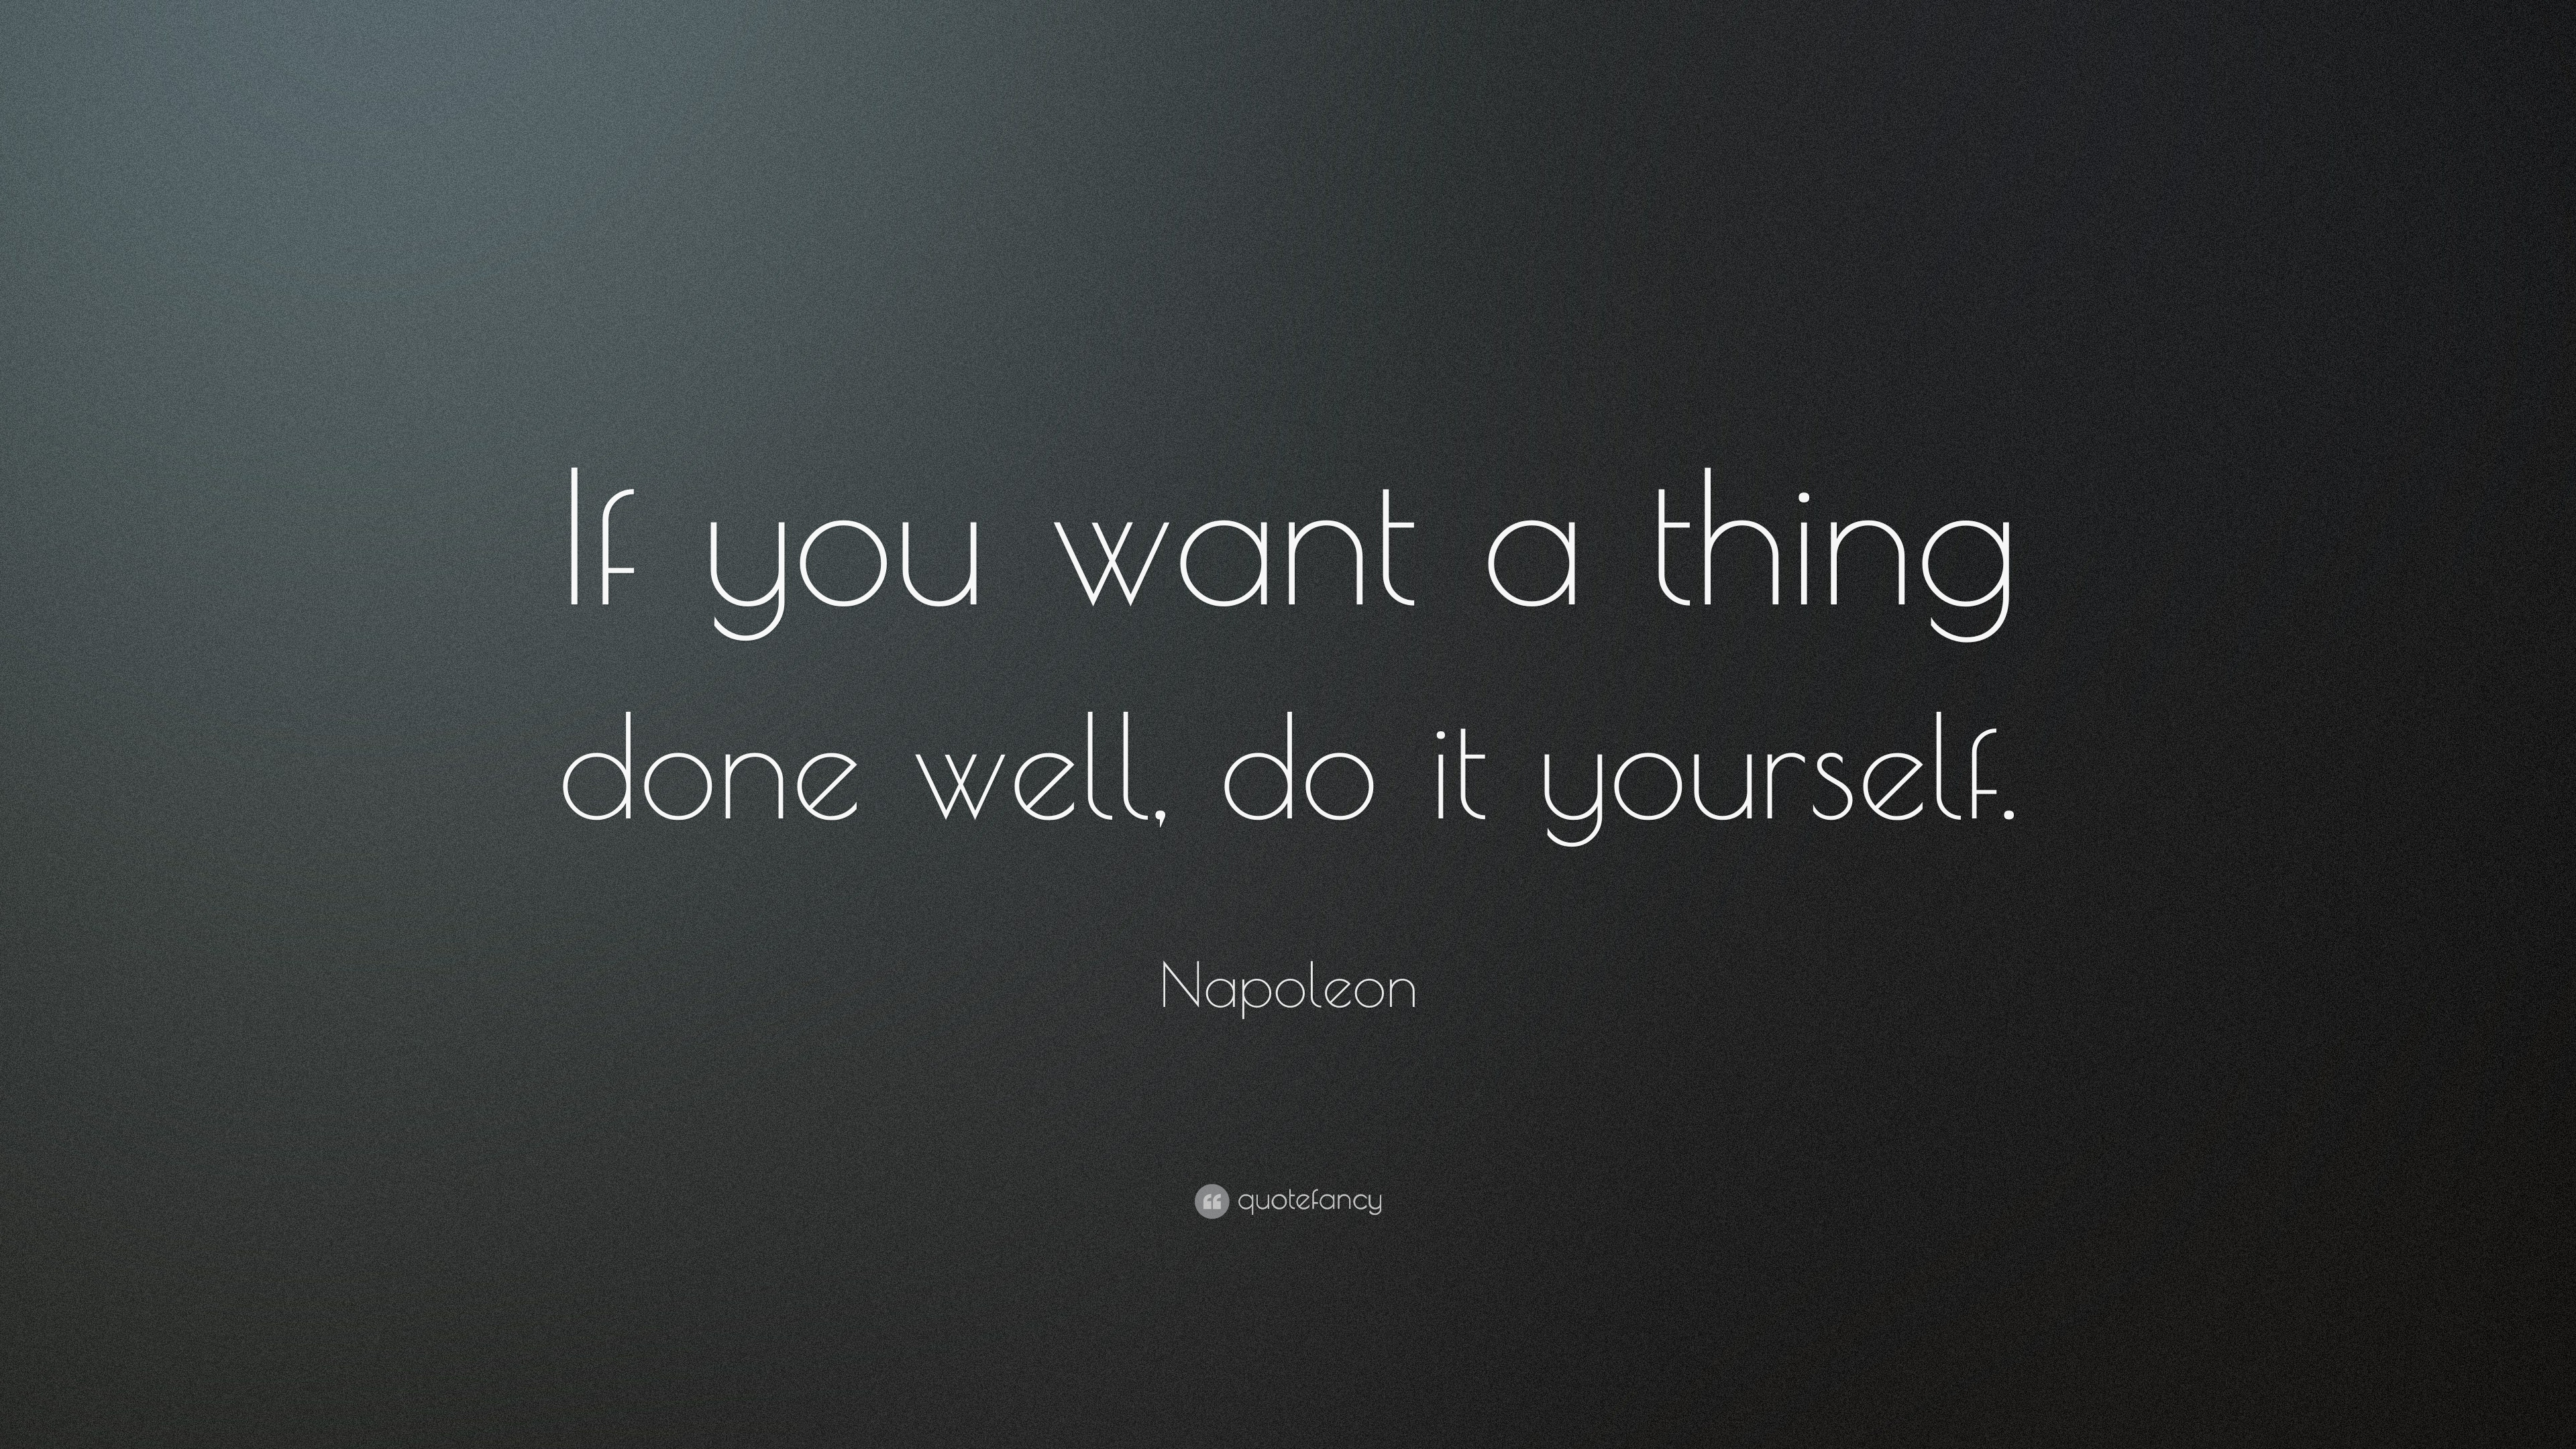 Push Yourself Quotes Wallpaper Napoleon Quote If You Want A Thing Done Well Do It